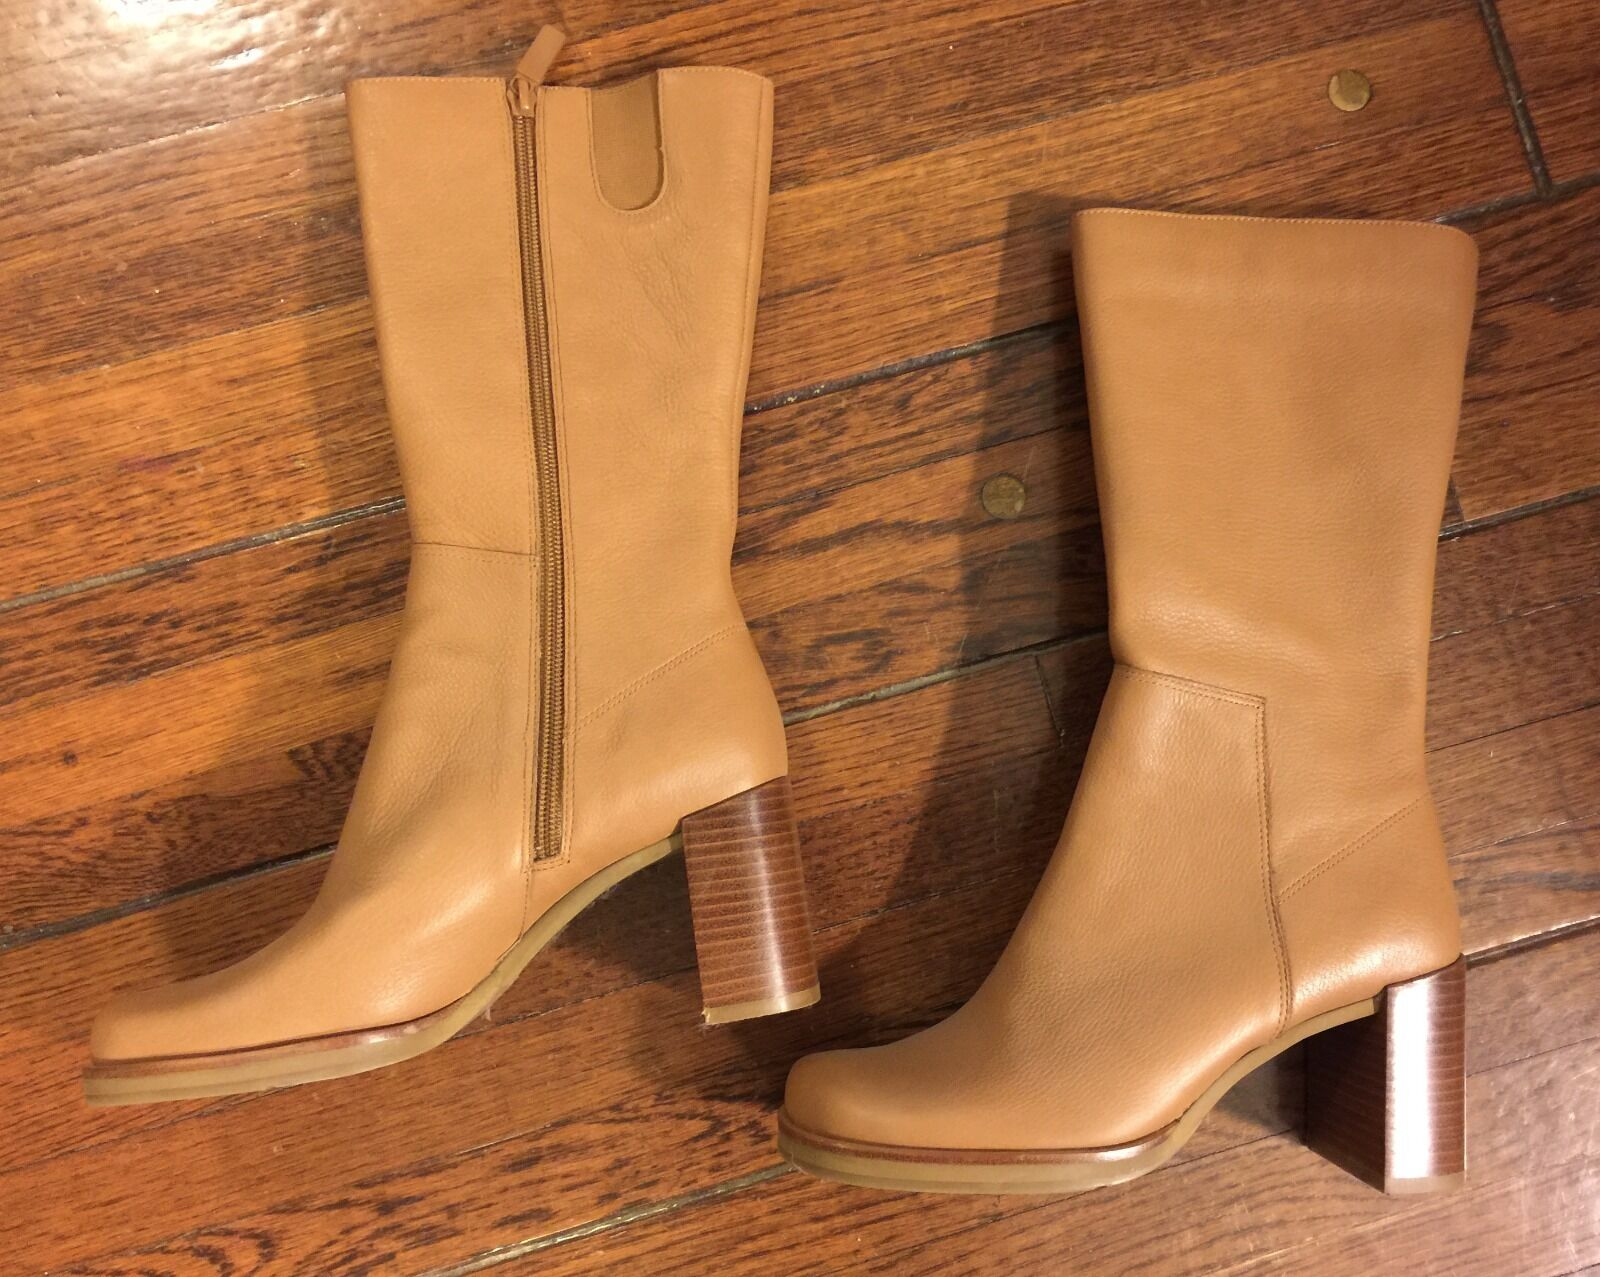 SALE! Me Too NEW tall BOOTS Caramel colored, zip-side Size 6.5 - Stacked heel